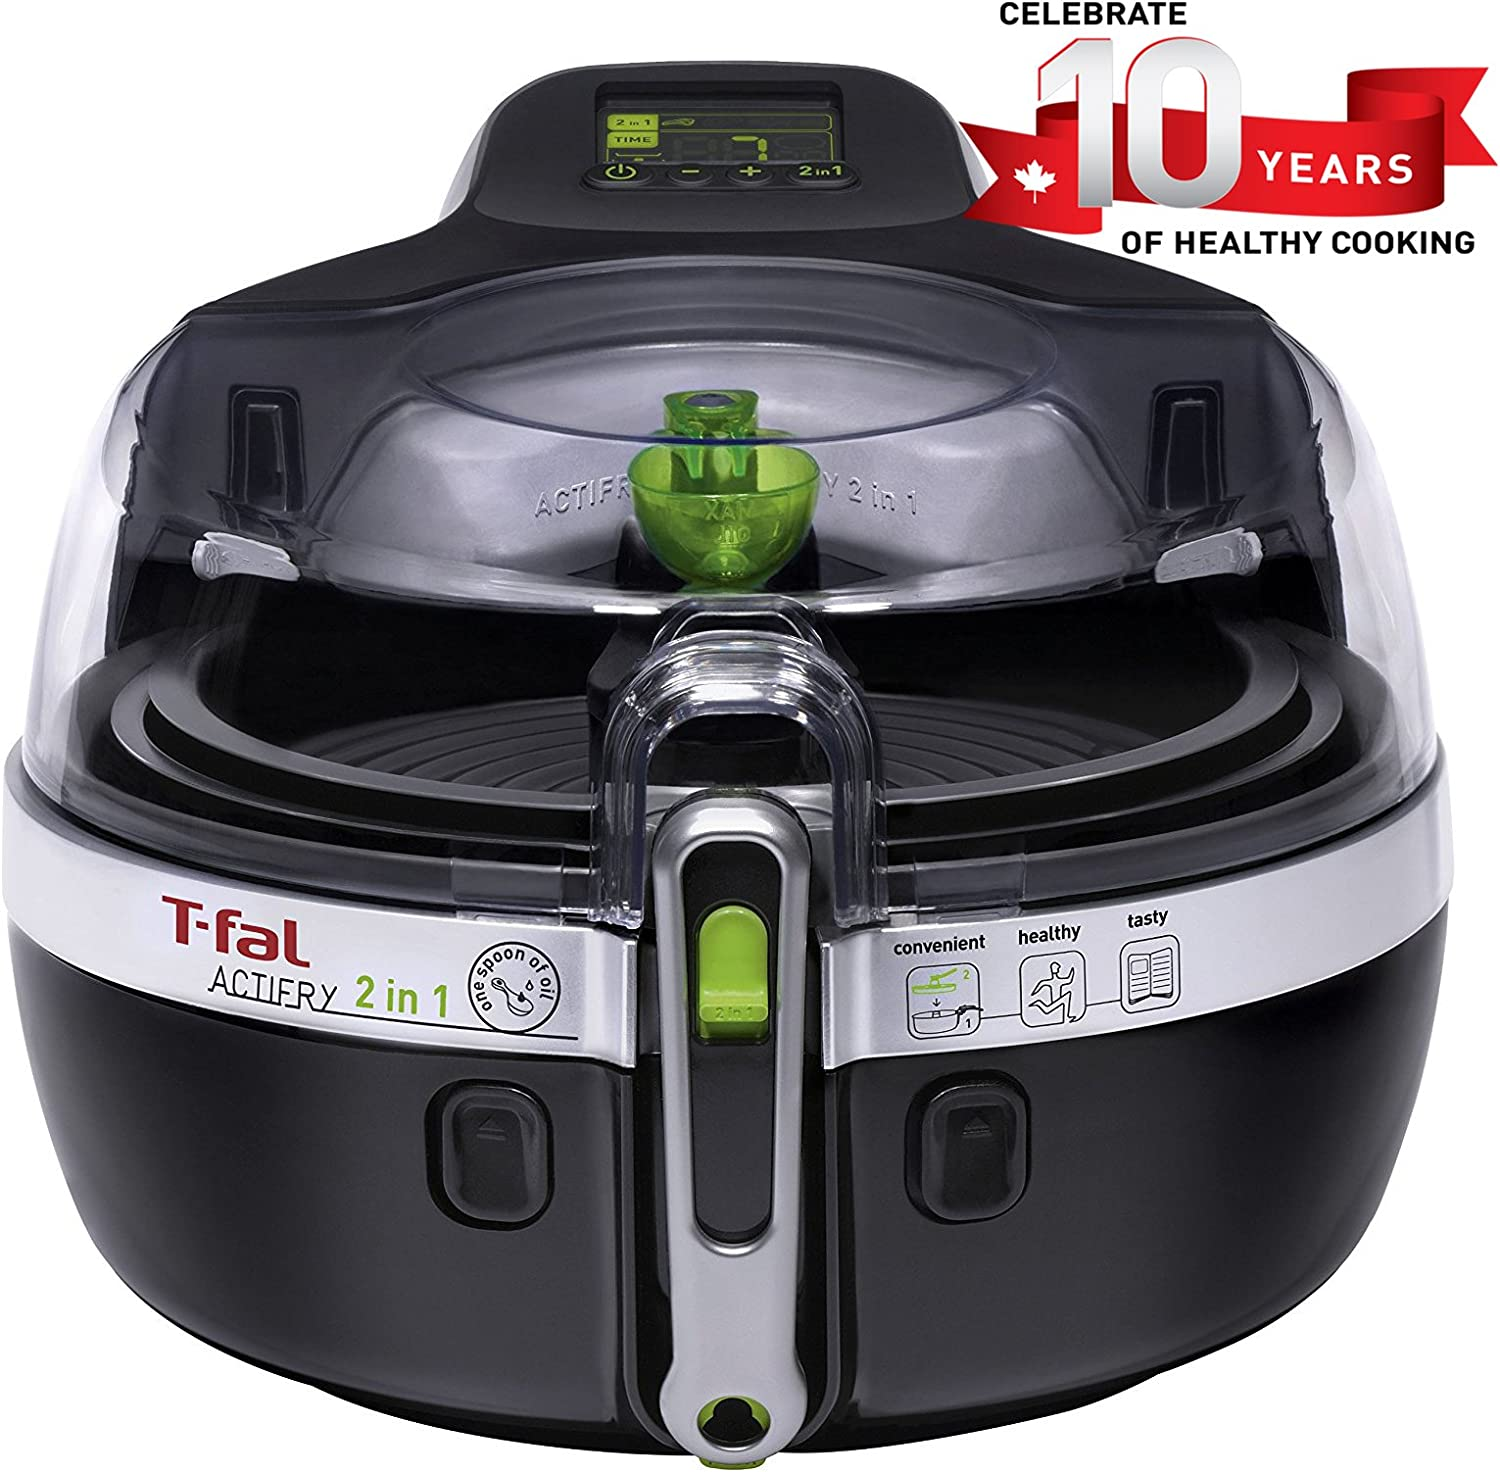 Tefal YV9601 Actifry 2 in 1 Review